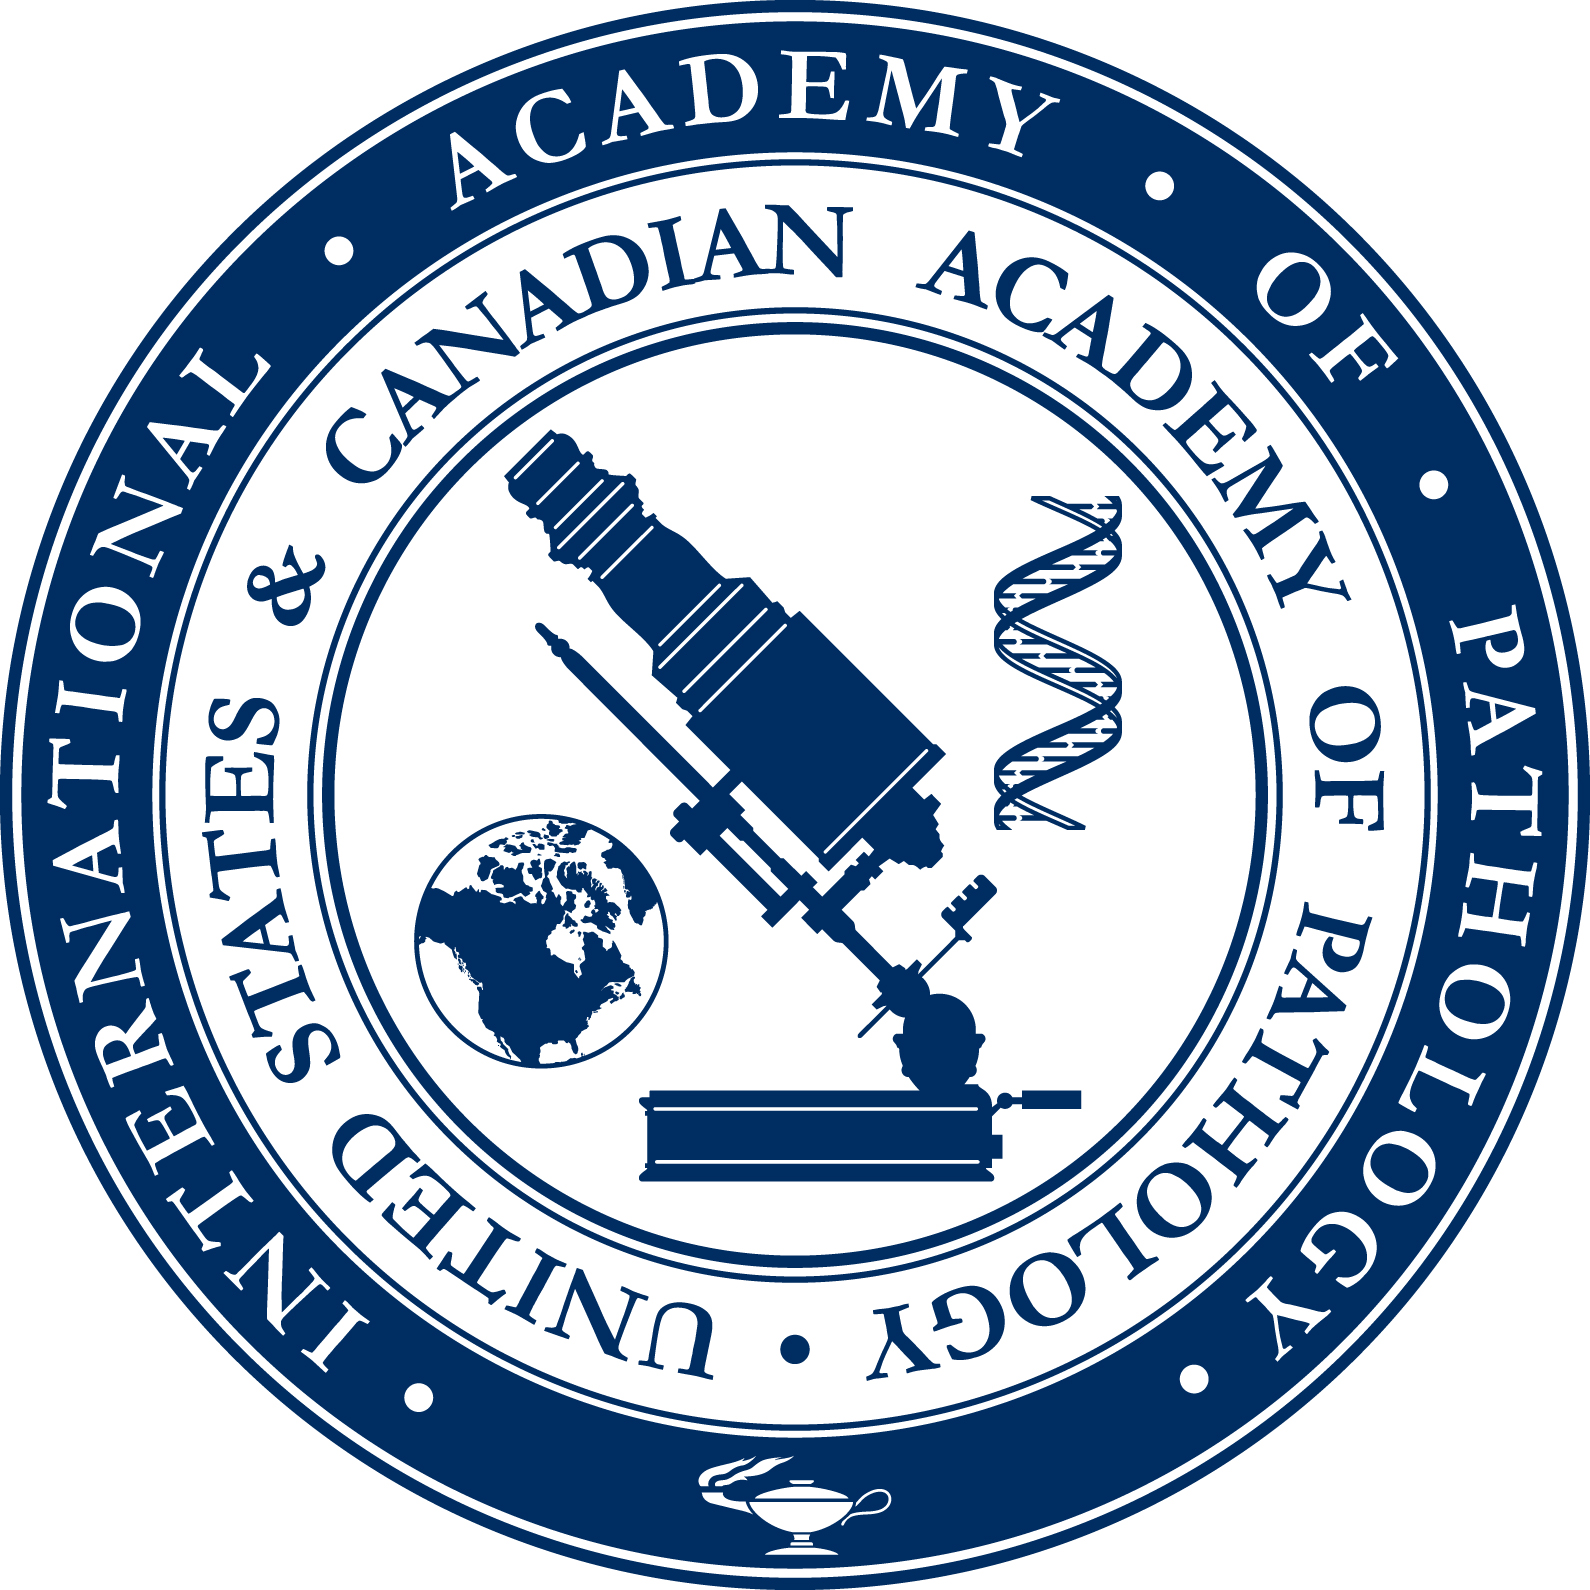 United States & Canadian Academy of Pathology Logo